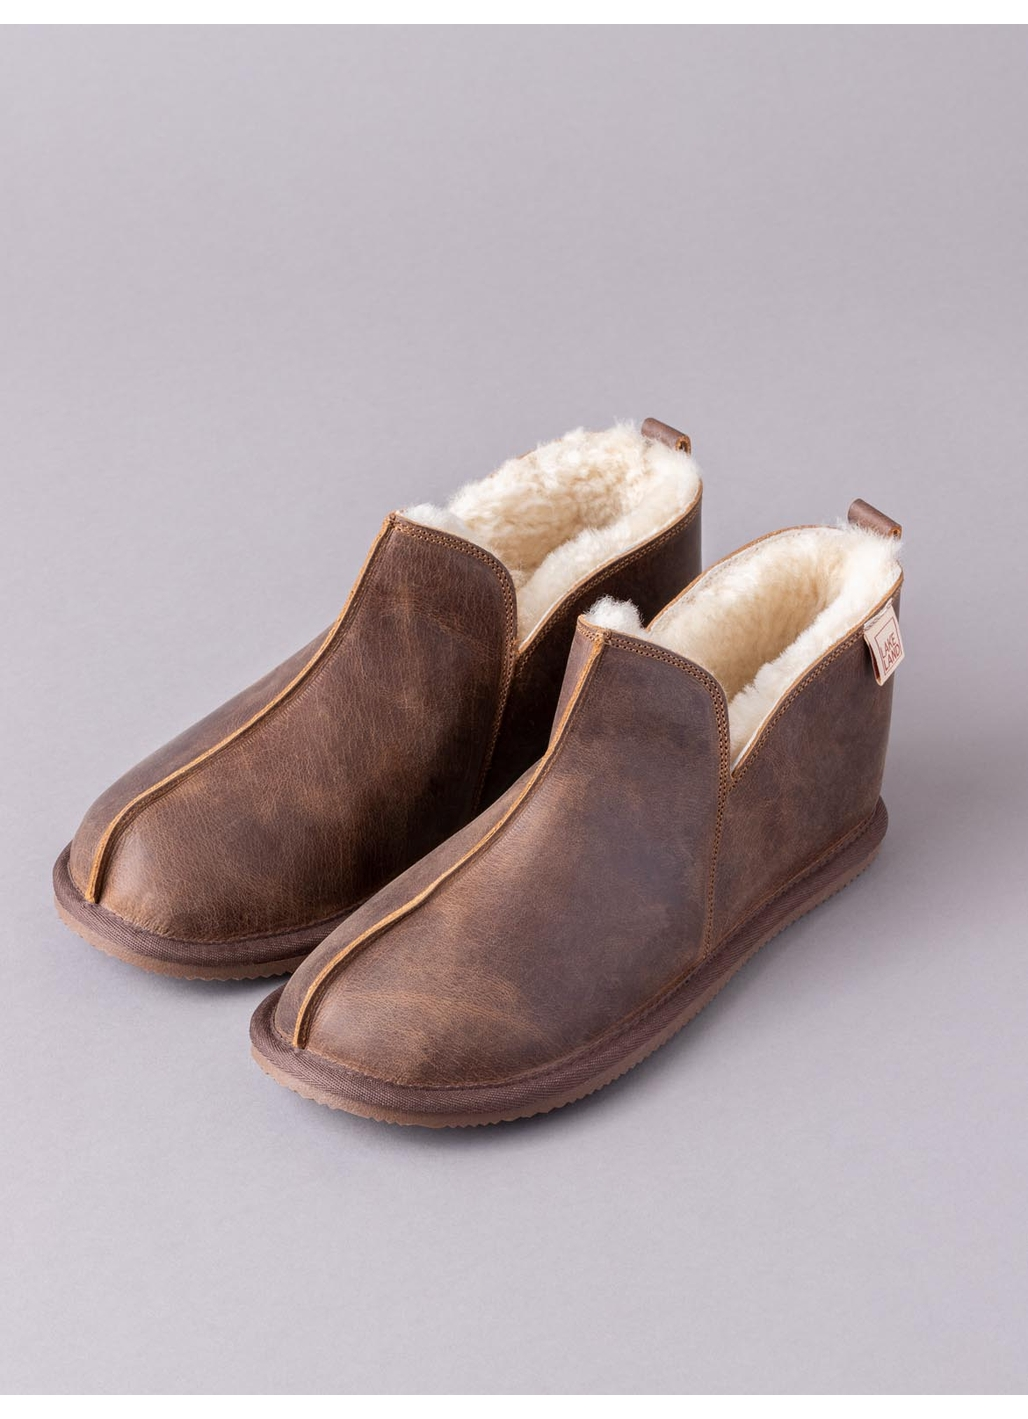 Men's Leather Slipper Boot in Brown